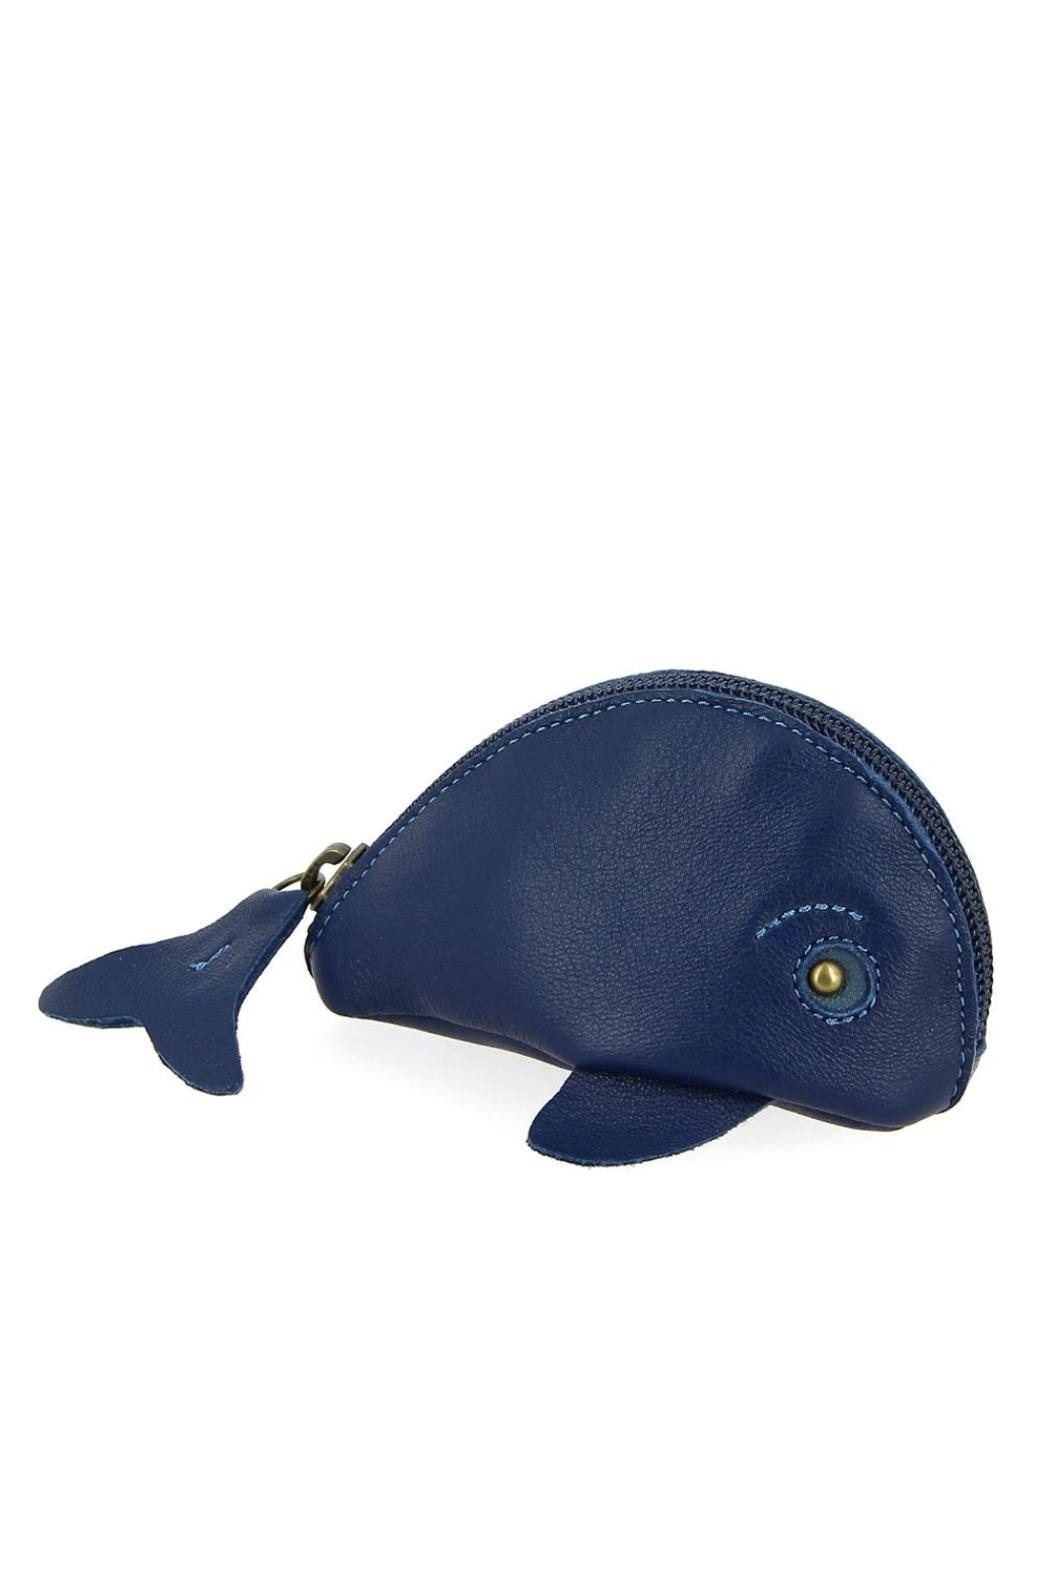 ezpz Blue Whale Purse - Main Image